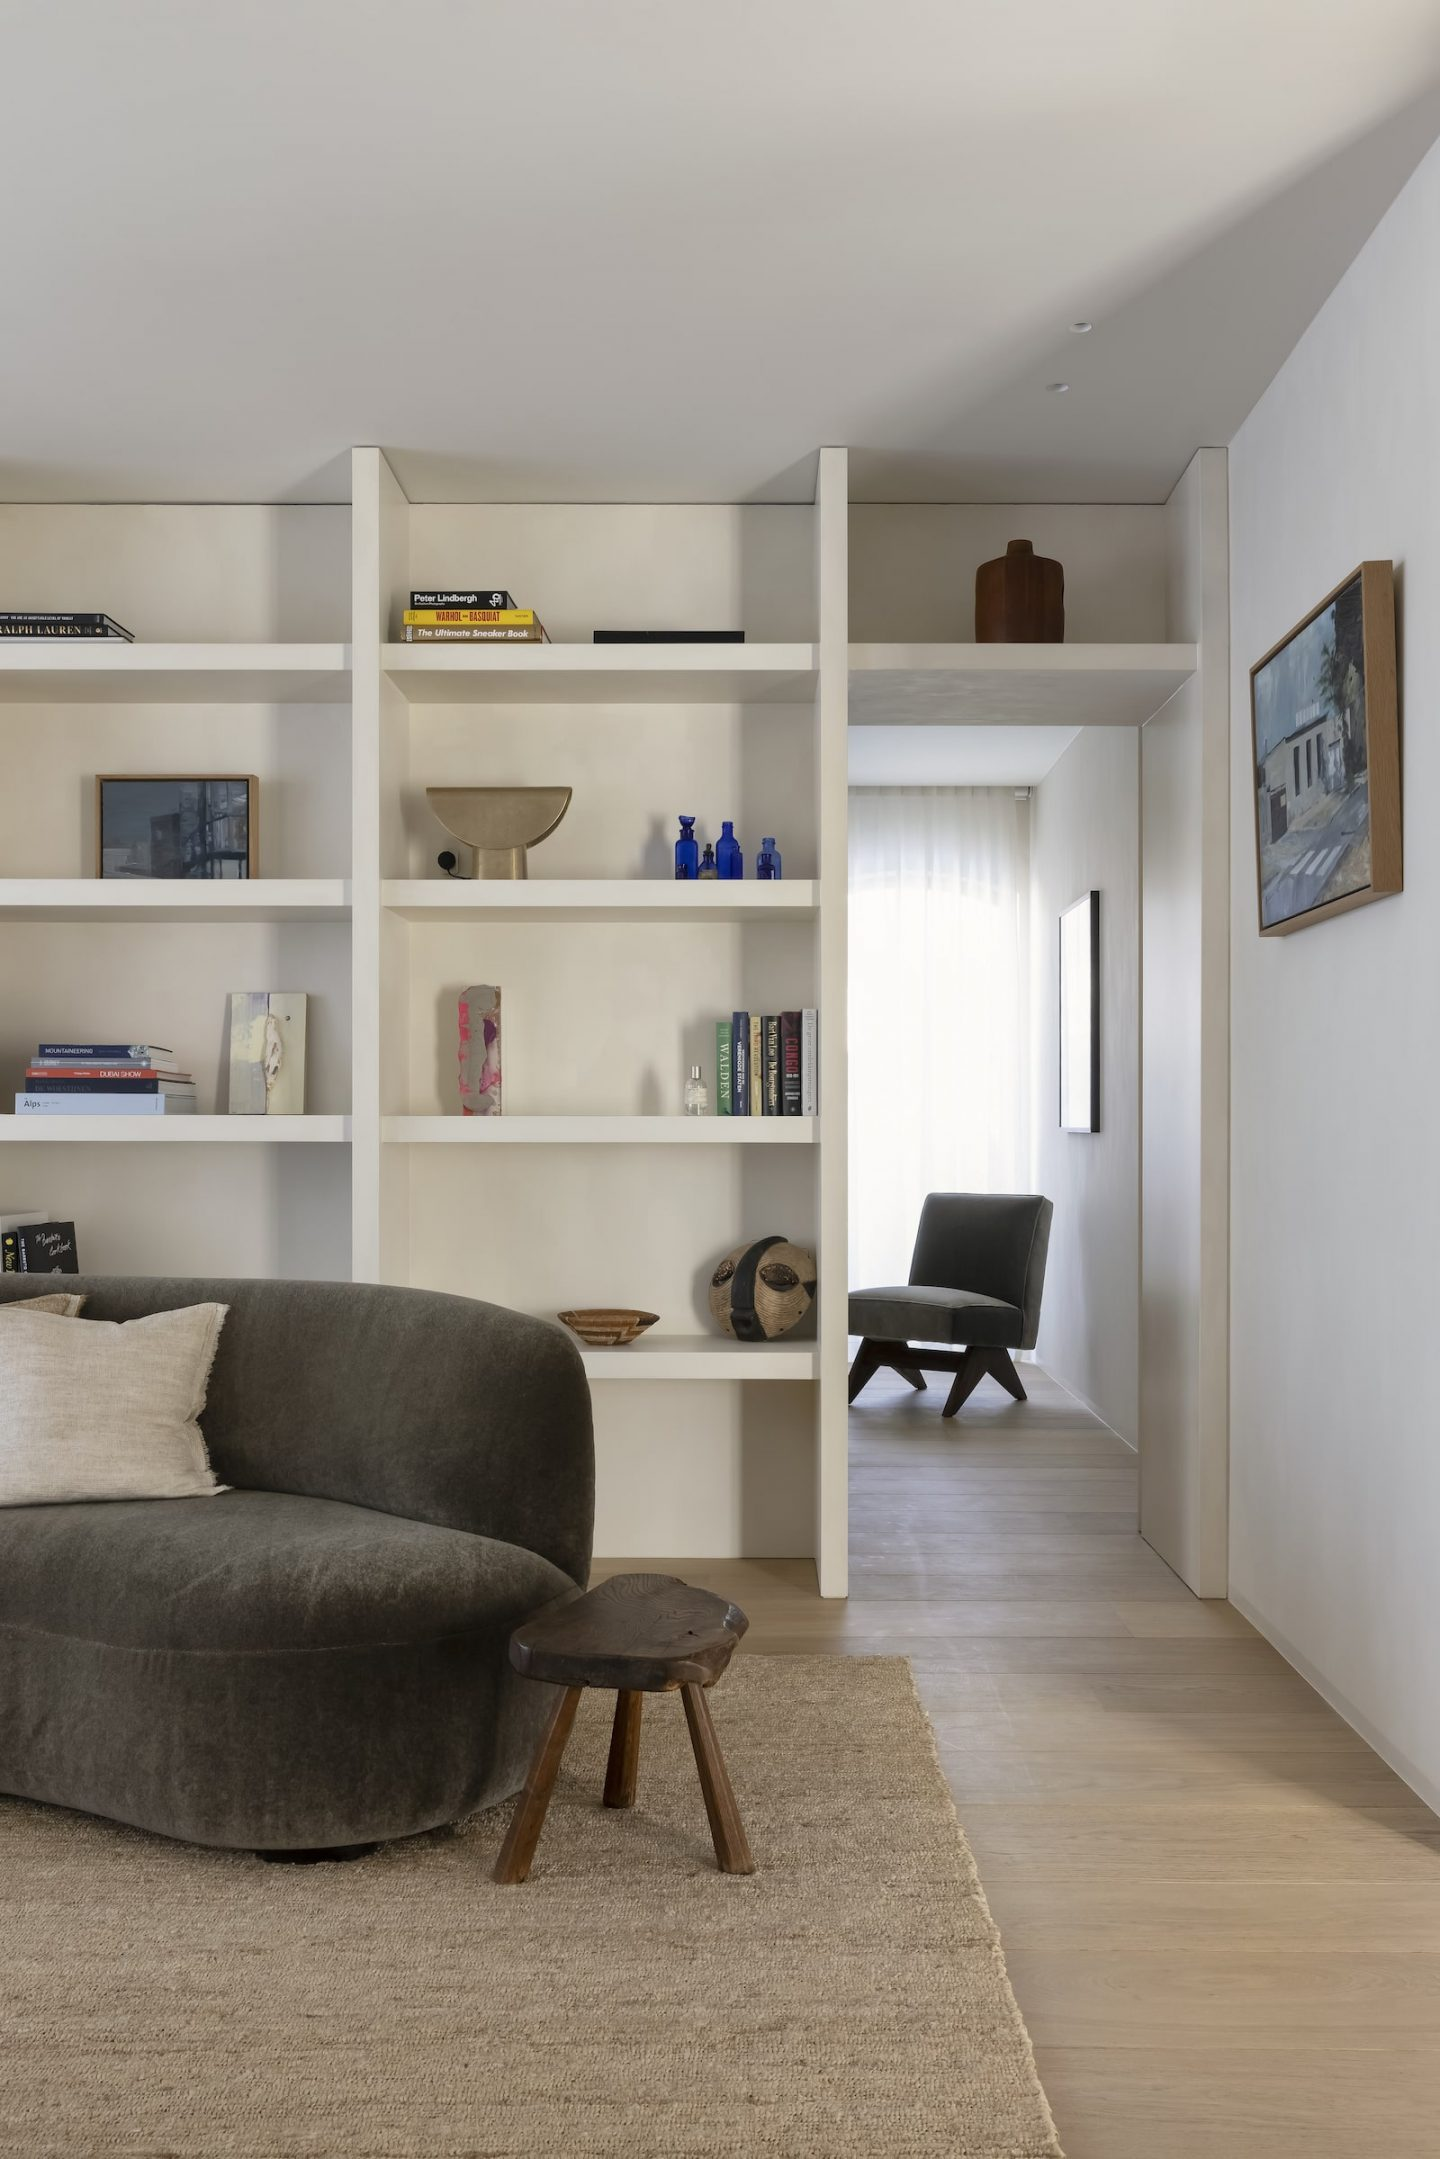 IGNANT-Architecture-Andy-Kerstens-MUD-Residence-016